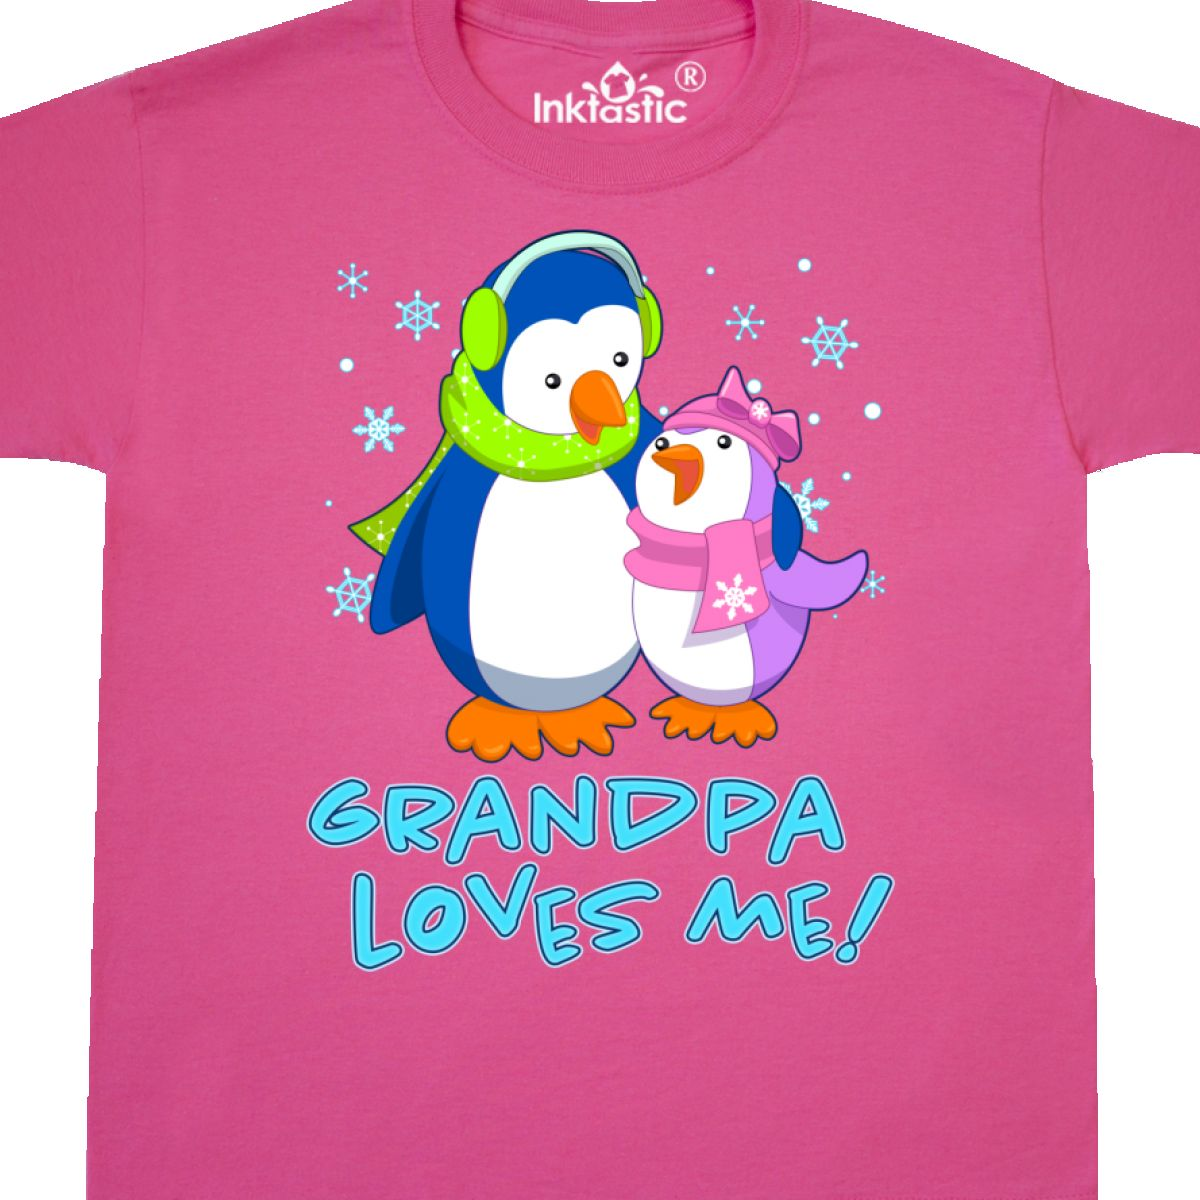 Baby & Toddler Clothing Inktastic My Nonna Loves Me Cute Penguins Infant Dress Family Winter Grandson